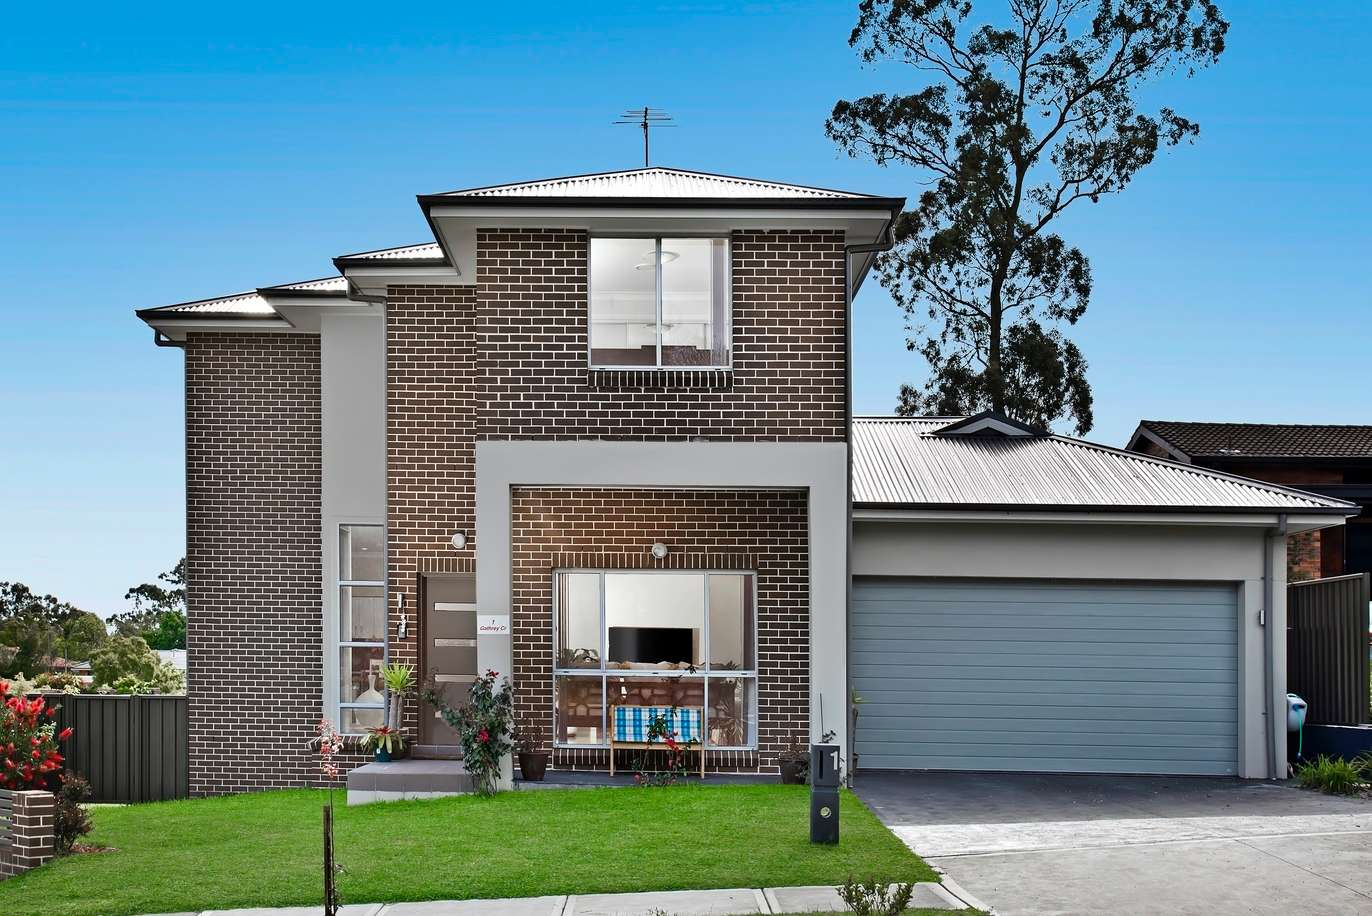 Main view of Homely house listing, 1 Gathrey Crescent, Kings Langley, NSW 2147